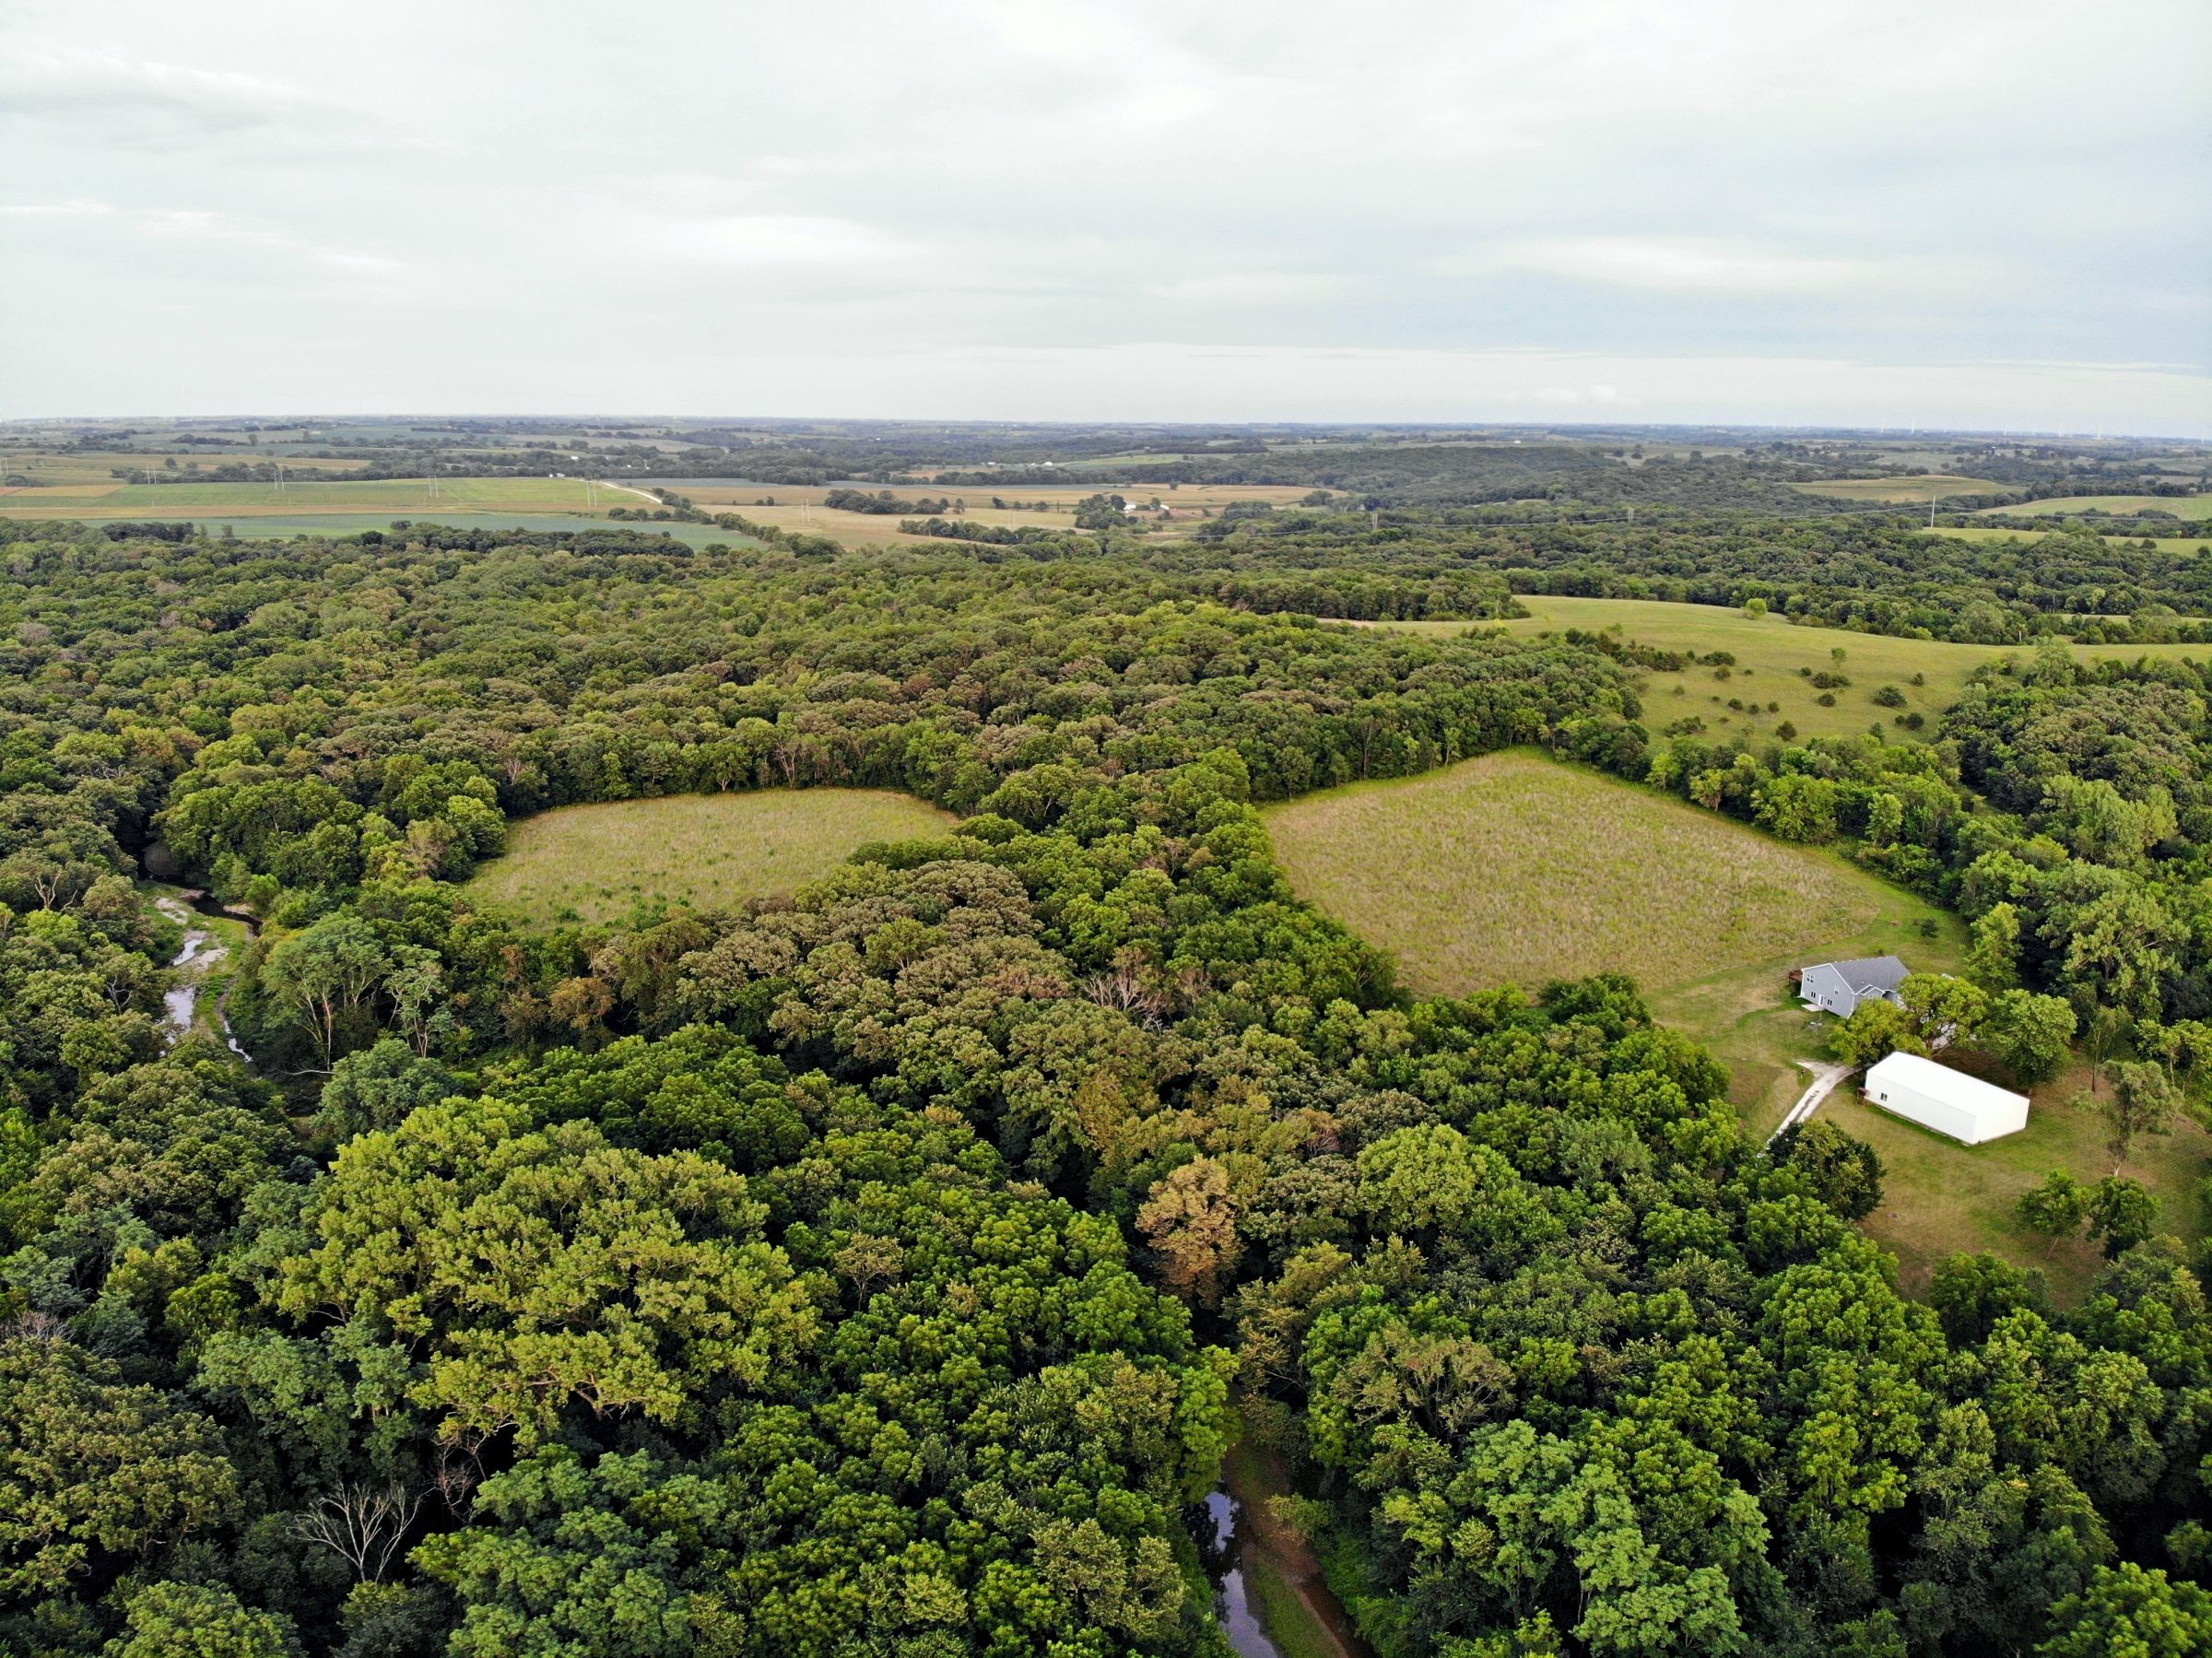 residential-land-madison-county-iowa-106-acres-listing-number-15123-4-2020-08-24-023317.JPG